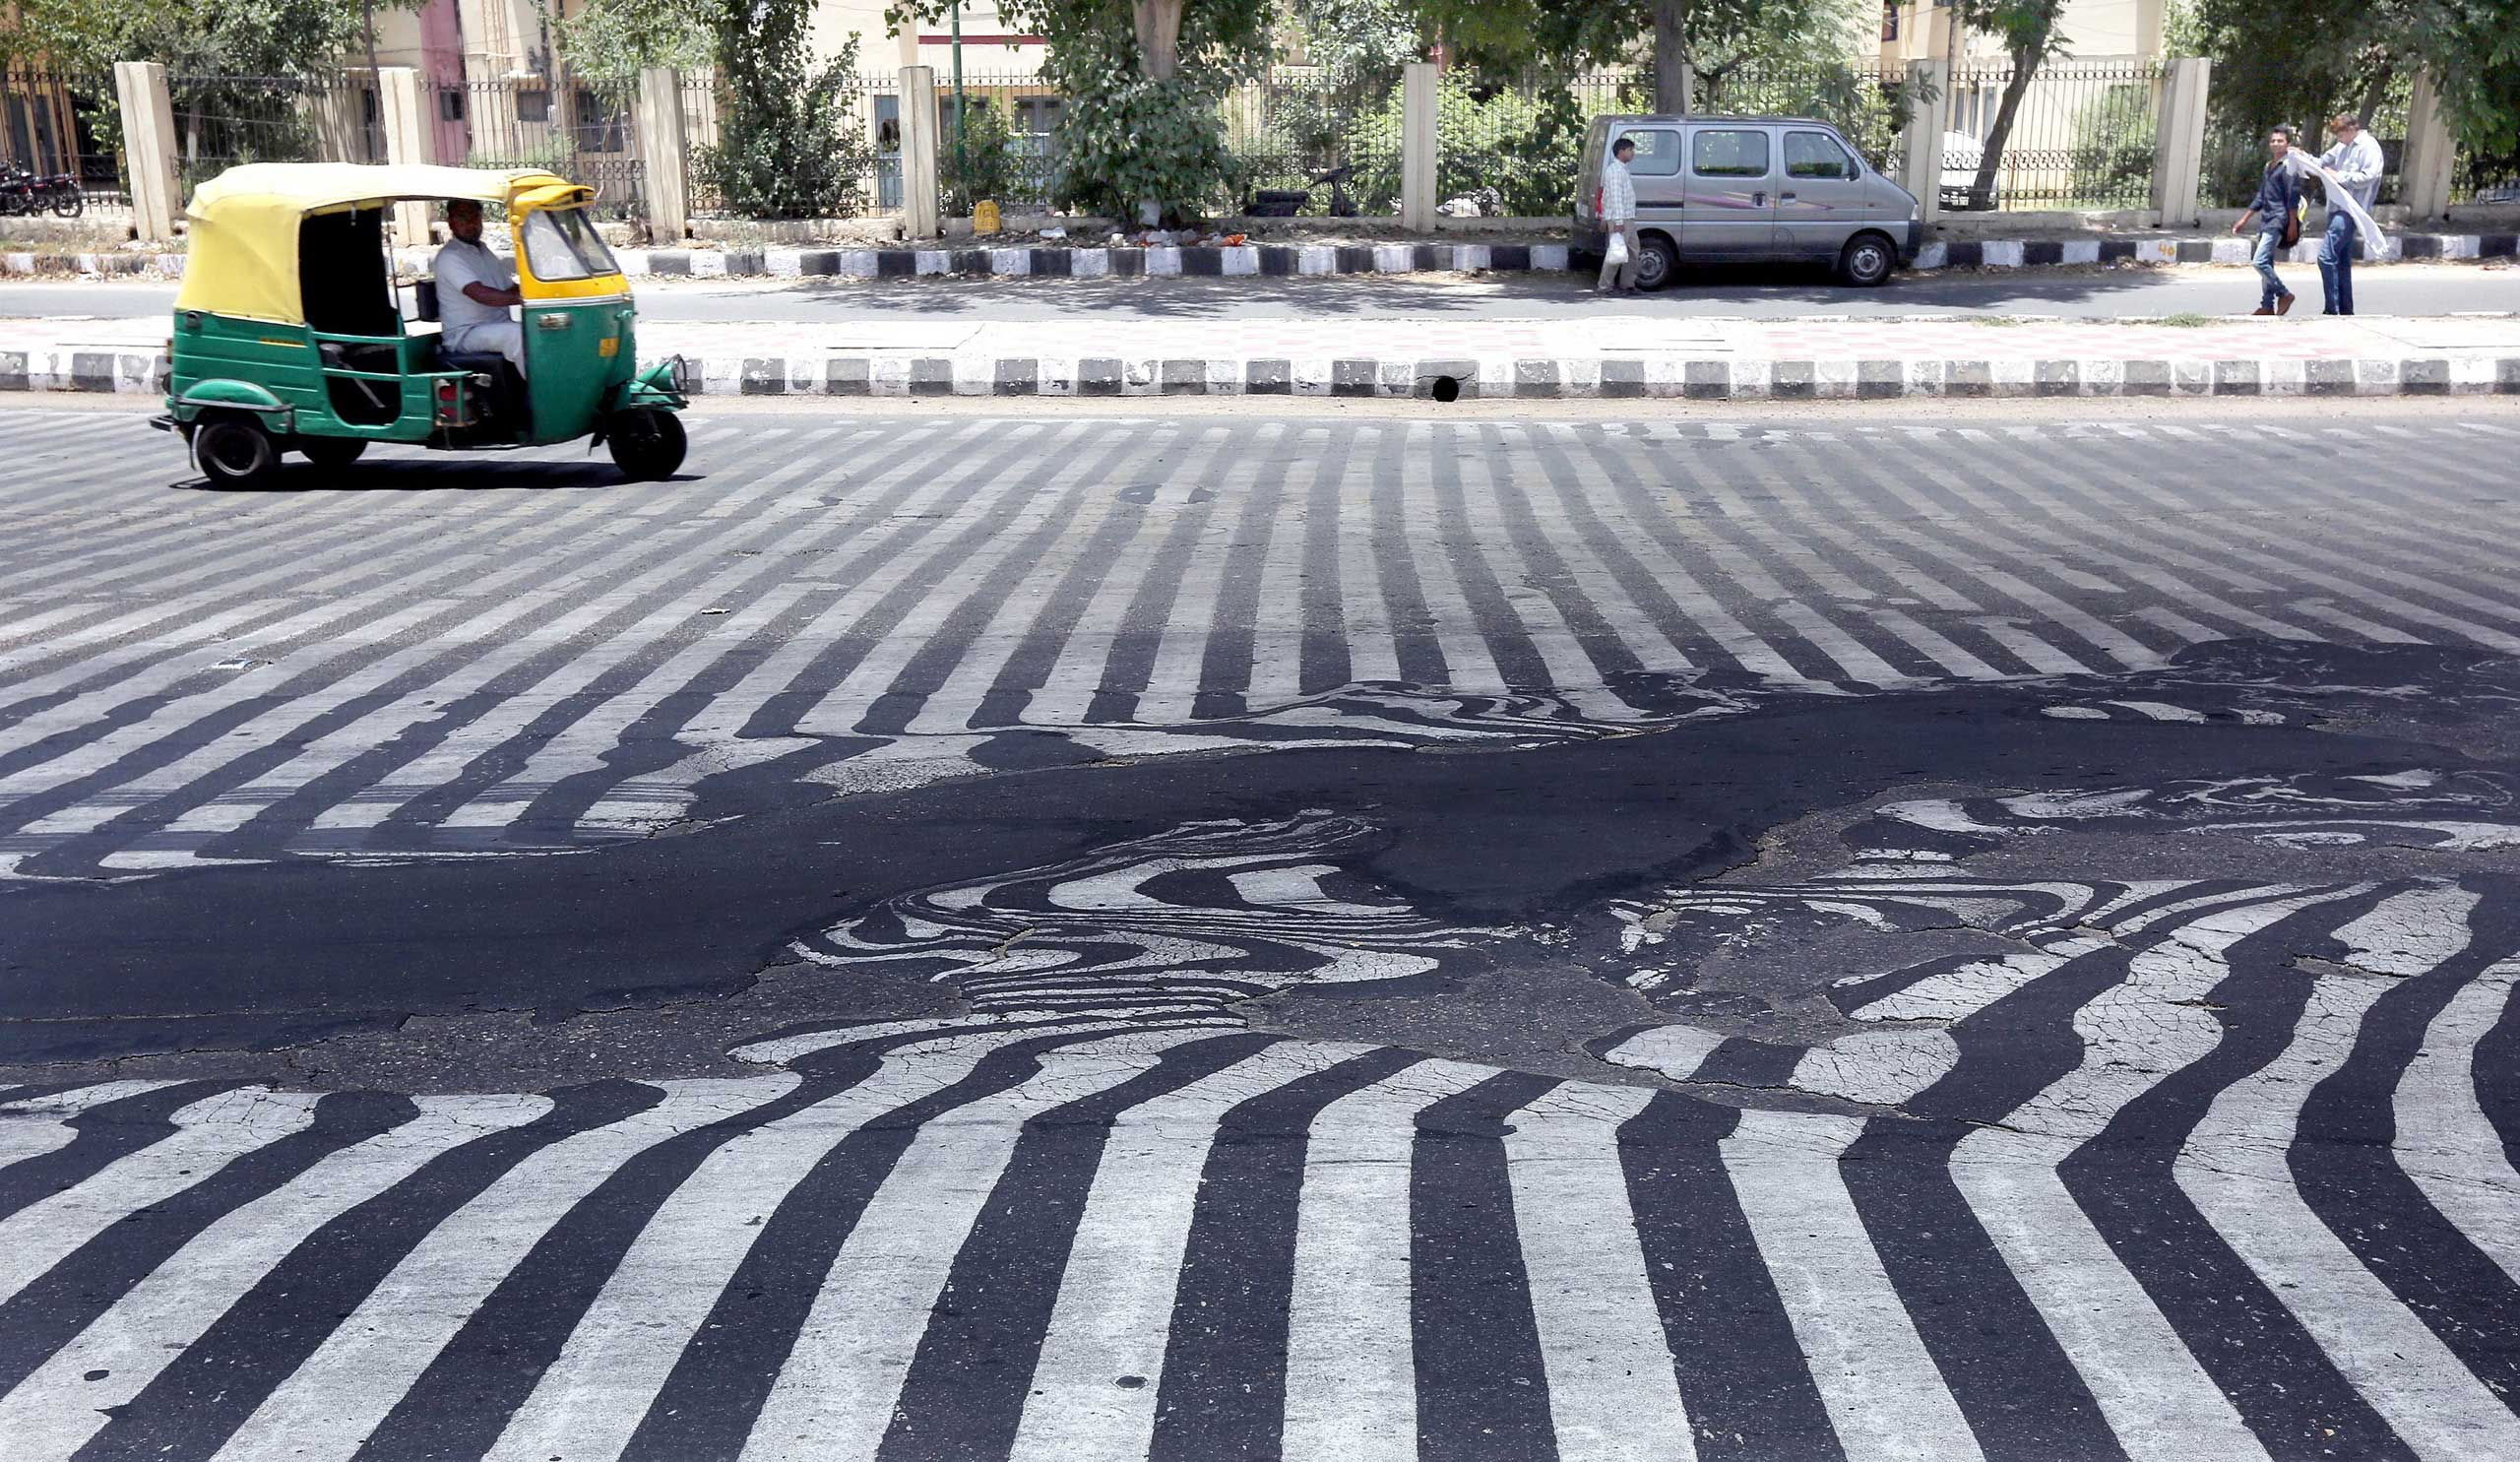 Road markings appear distorted as the asphalt starts to melt due to the high temperature in New Delhi on May 27, 2015.